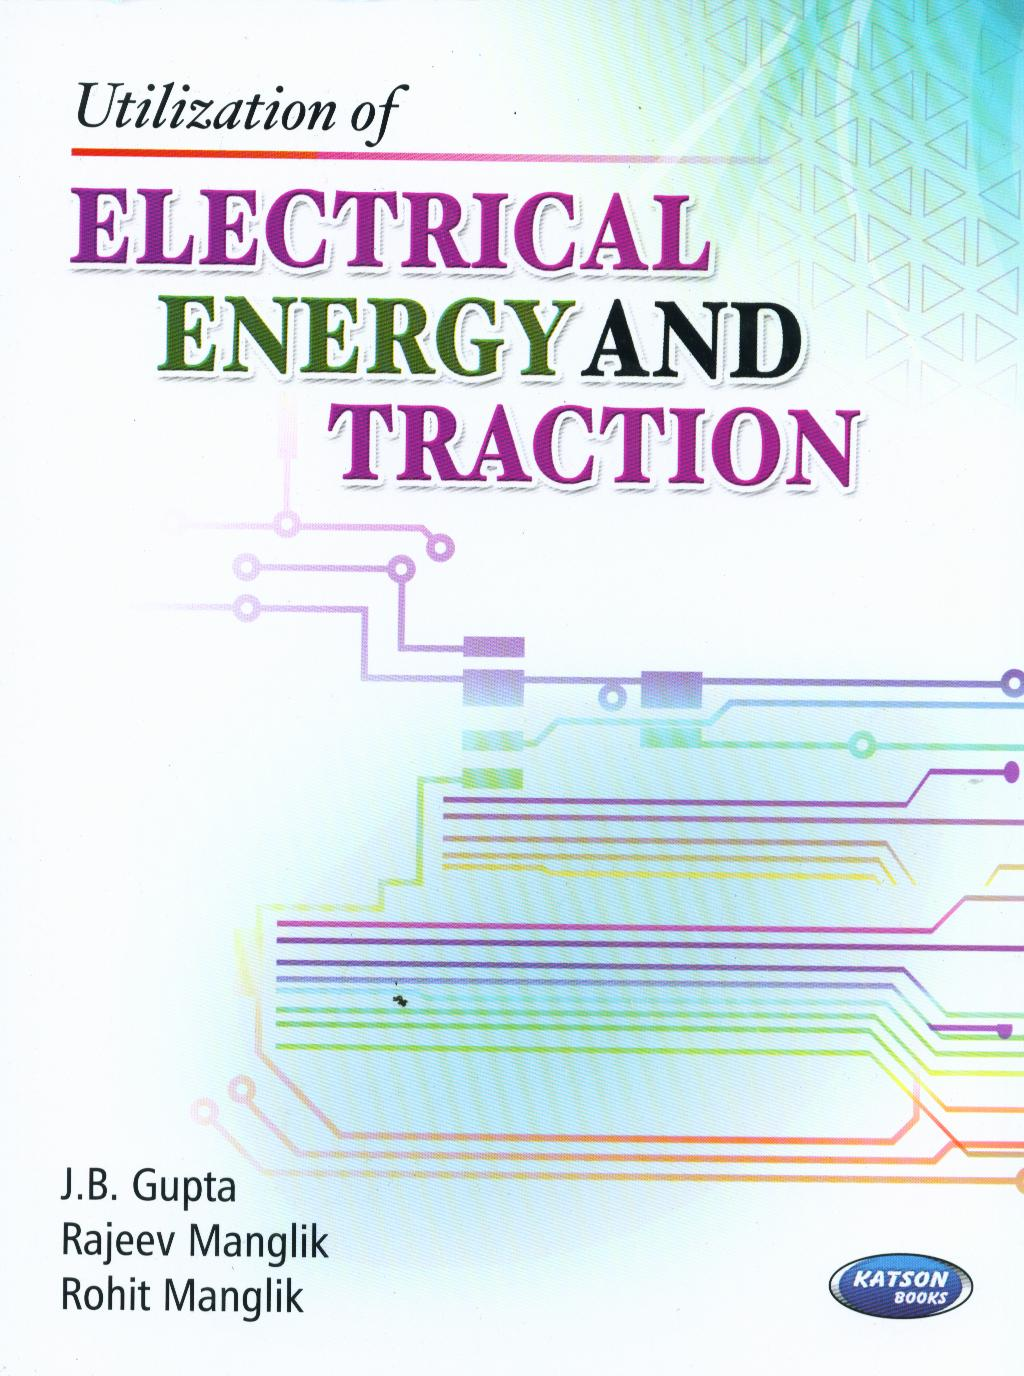 Electrical Energy Utilization Of By Jb Gupta Electronic Device Circuit Images